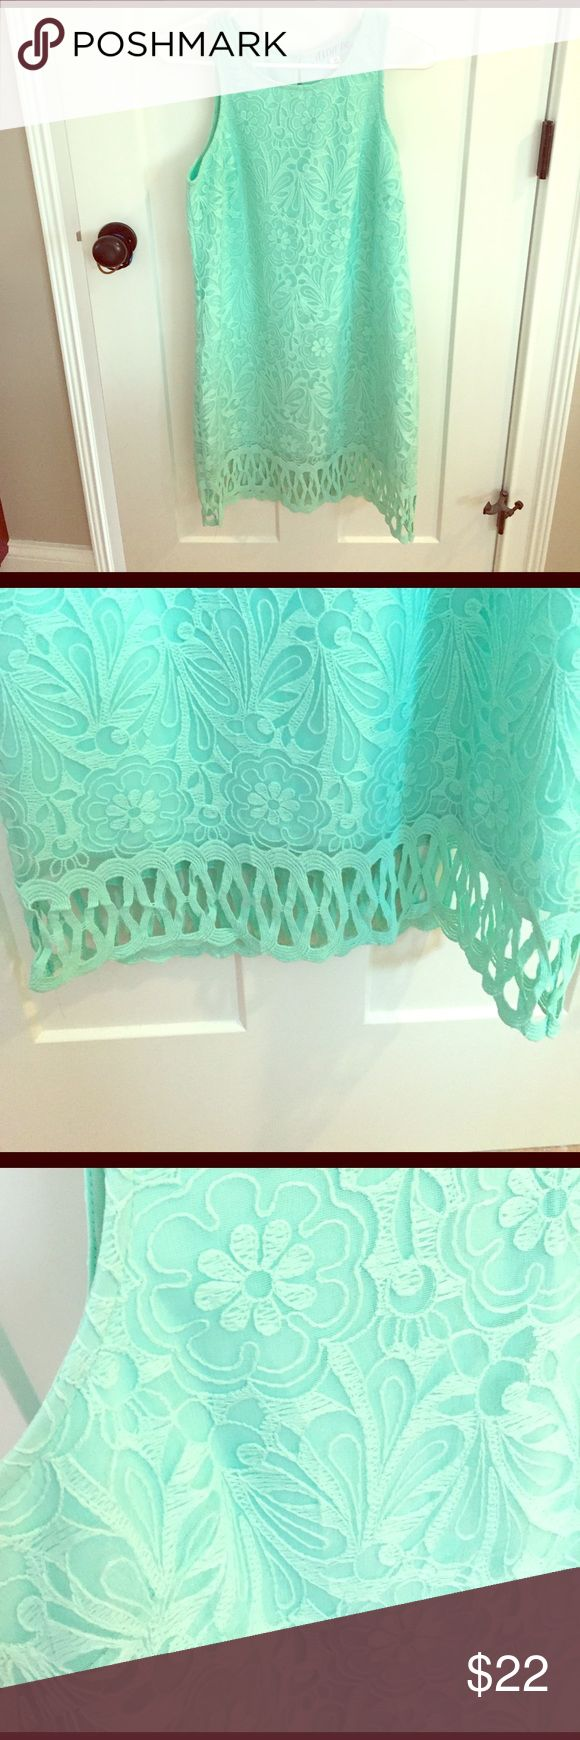 Turquoise Lace Dress Super cute lace dress from Francesca's! Brand is Anna Be. Only worn once for a baby shower! Francesca's Collections Dresses